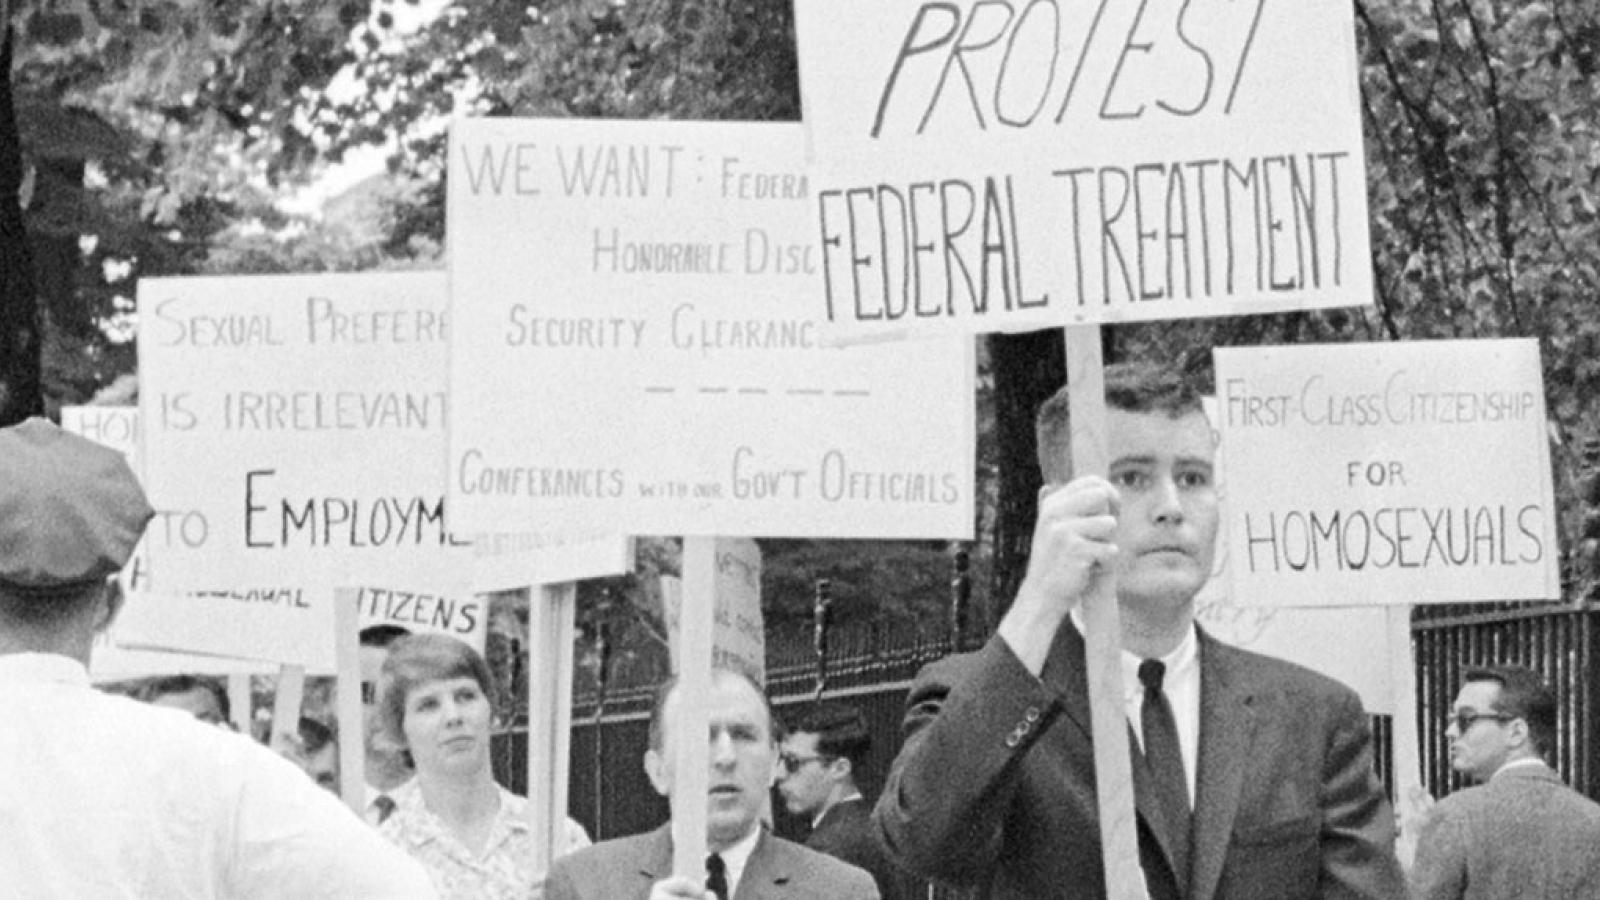 Screening & Discussion: The Lavender Scare